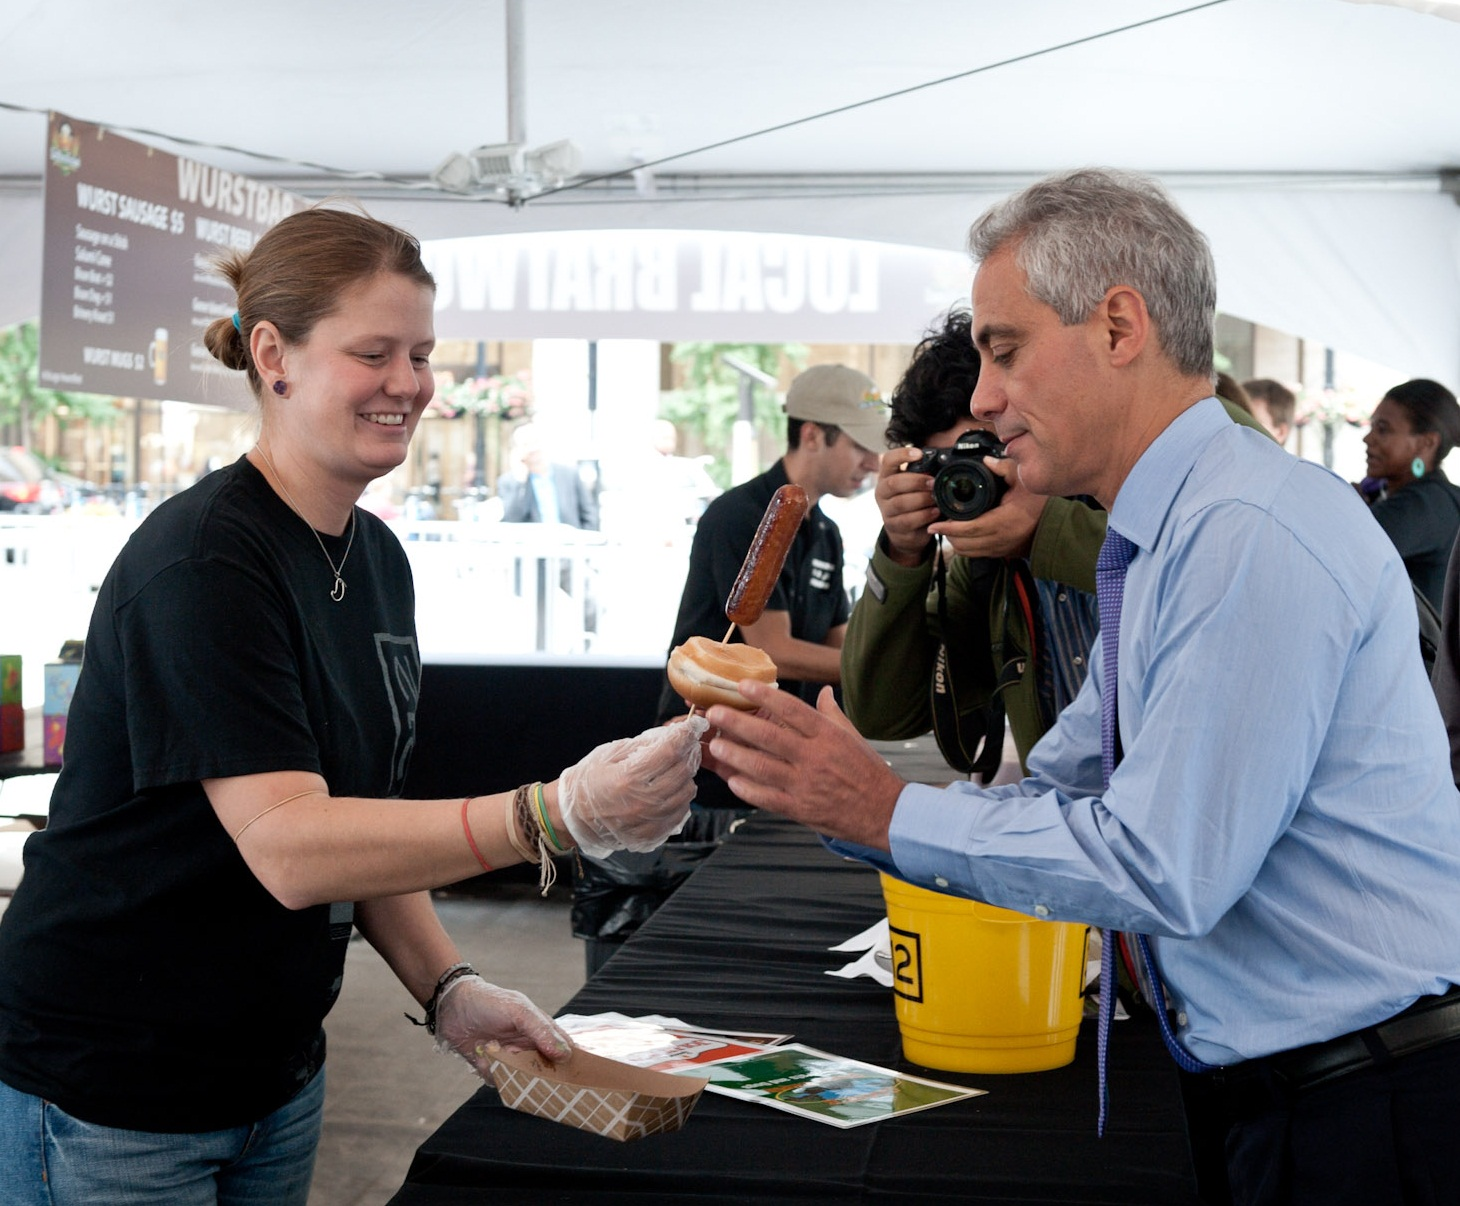 Mayor Emanuel joins residents at the opening day of The Wurst Festival at Daley Plaza